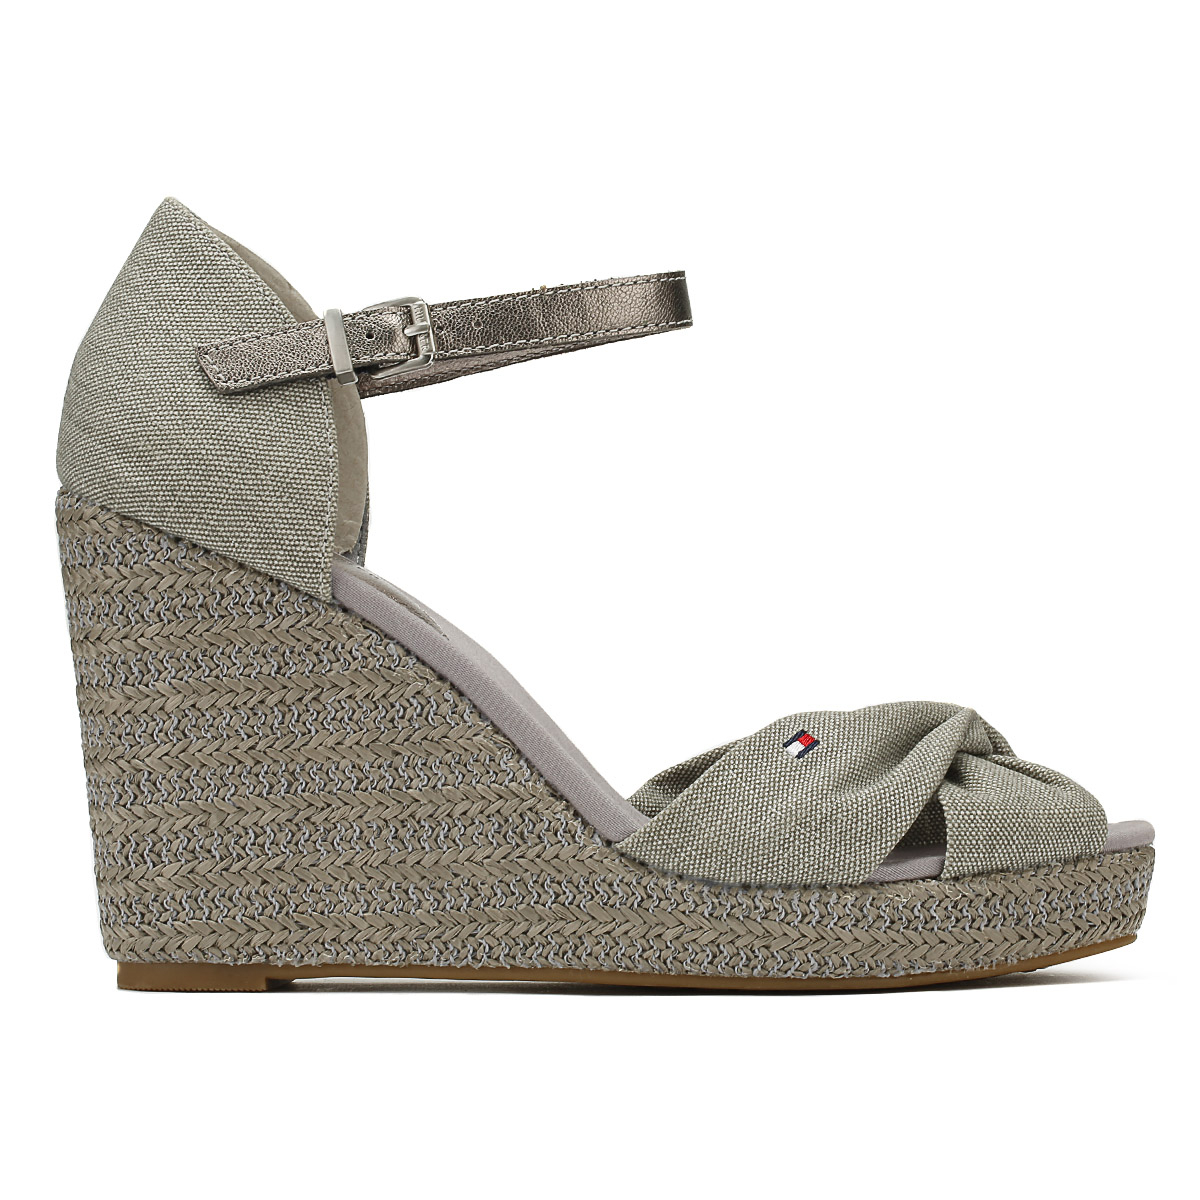 137a1c1ff ... colours and towering wedge. Complete with a Tommy Hilfiger logo  situated on the toe strap and adjustable ankle strap with a silver-toned  buckle.